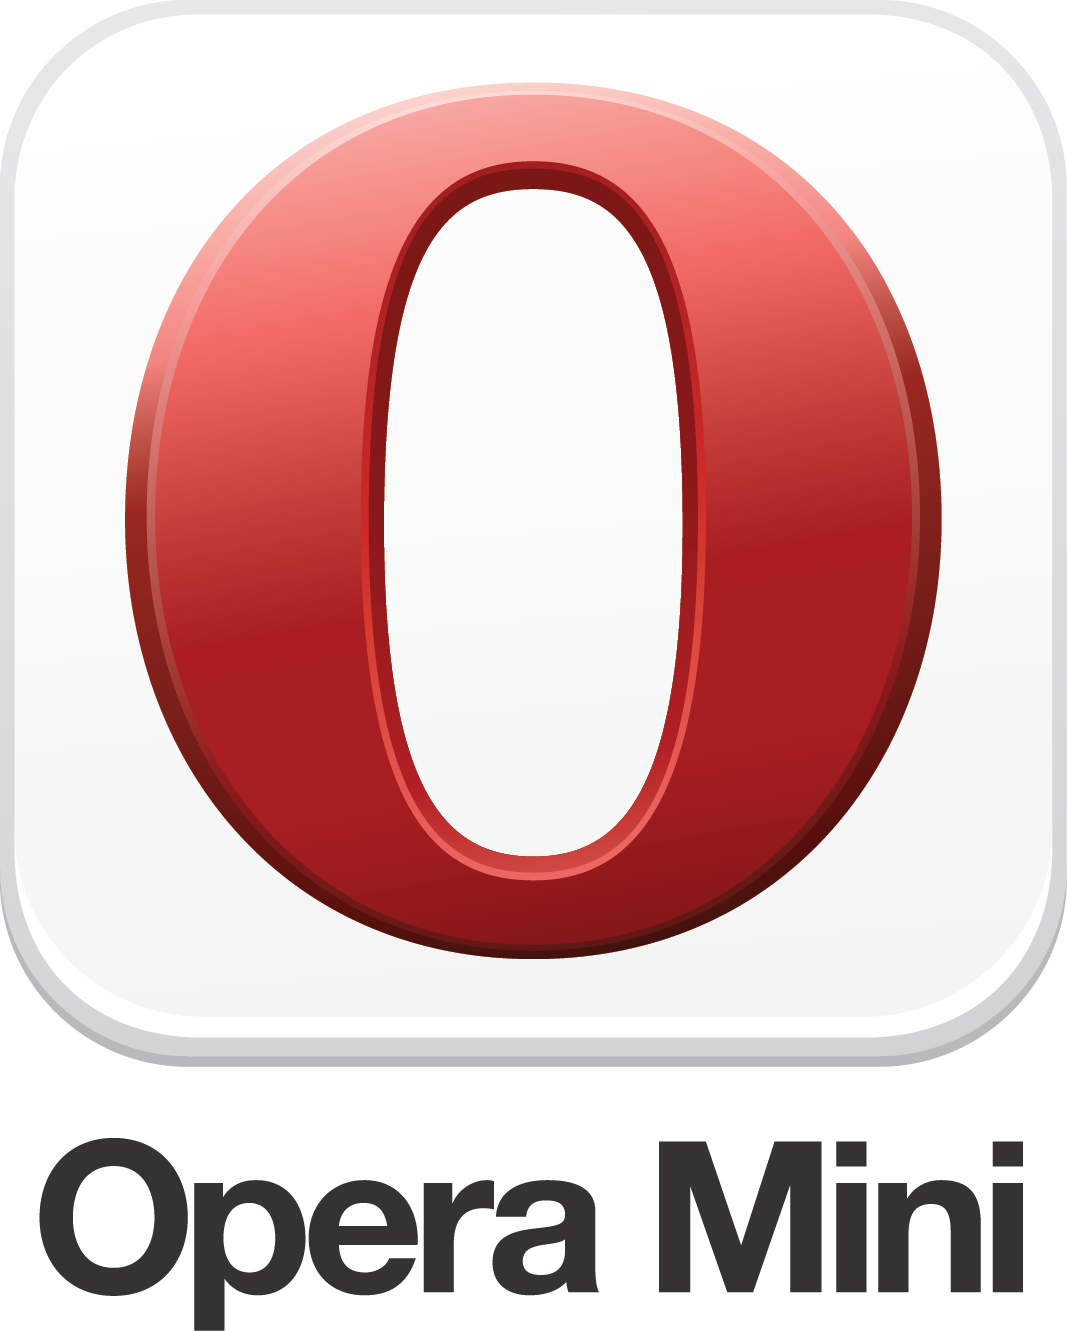 opera mini for android mobile free download